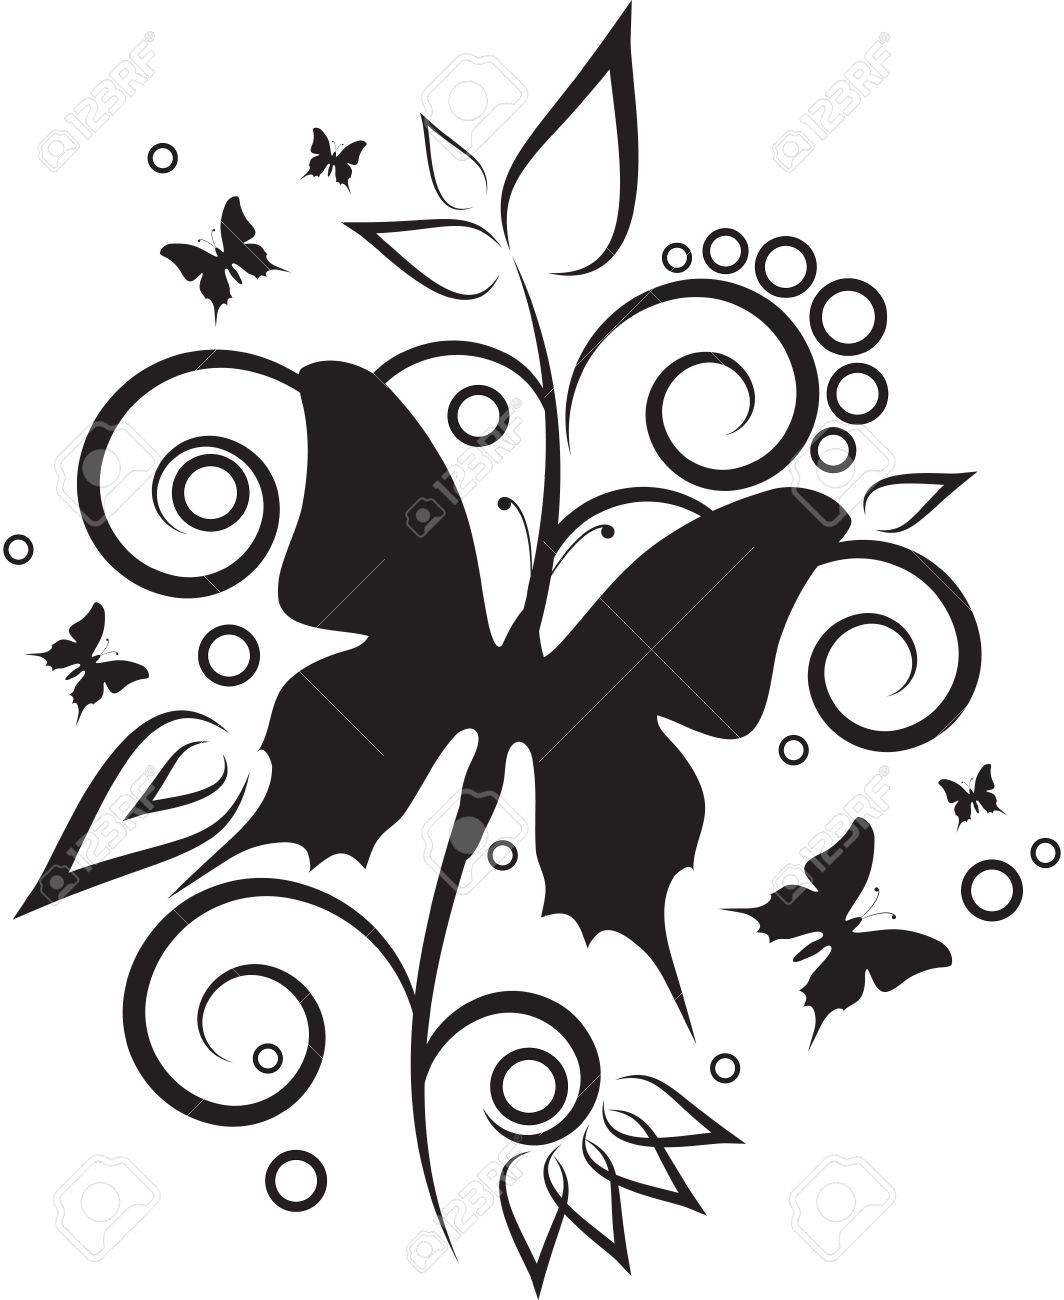 Butterfly Stock Vector - 17005545